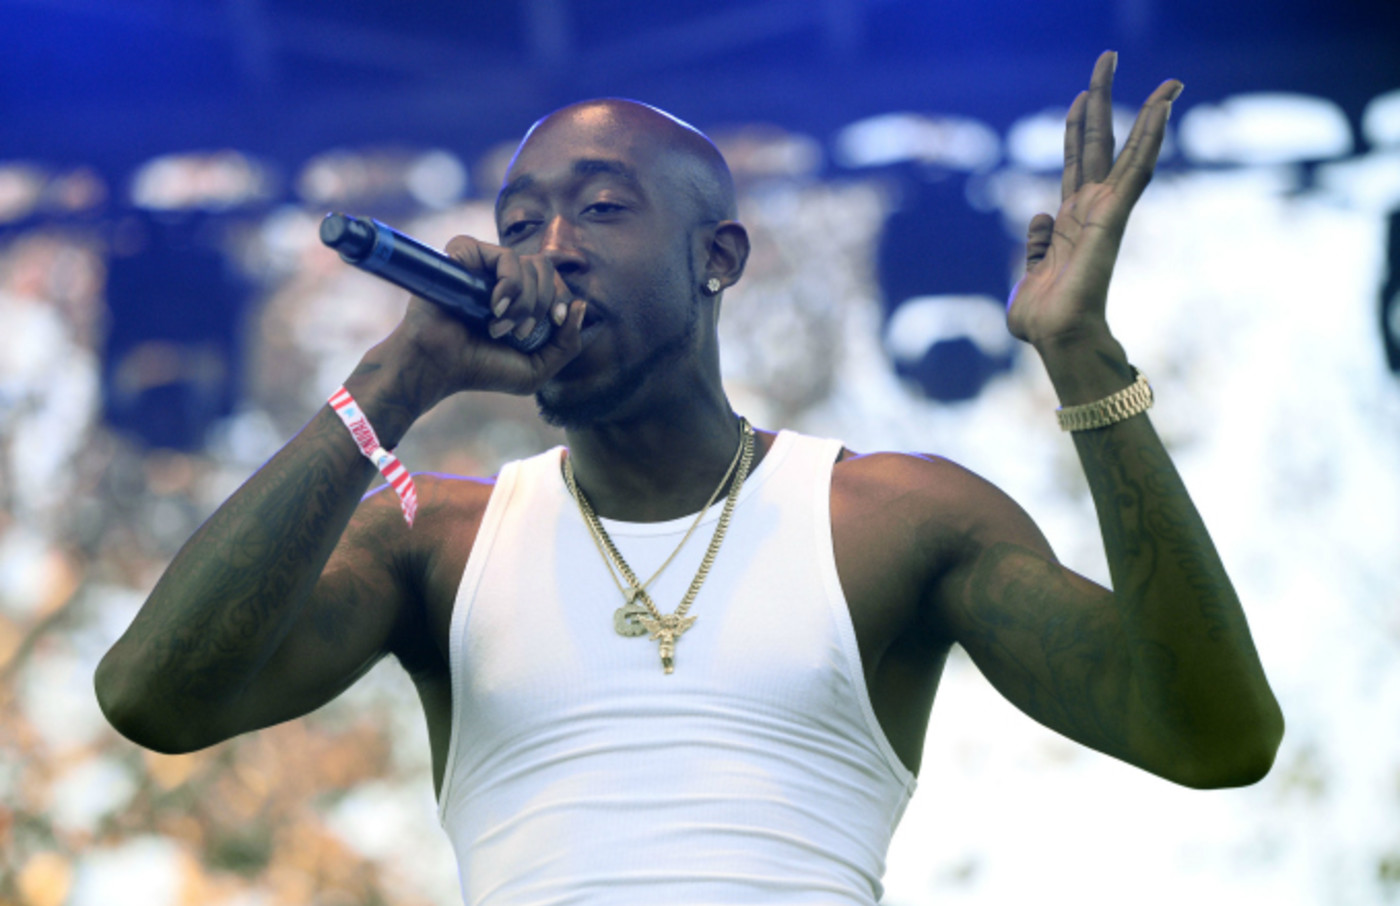 Rapper Freddie Gibbs performs onstage at the 3rd Annual Camp Flog Gnaw Carnival